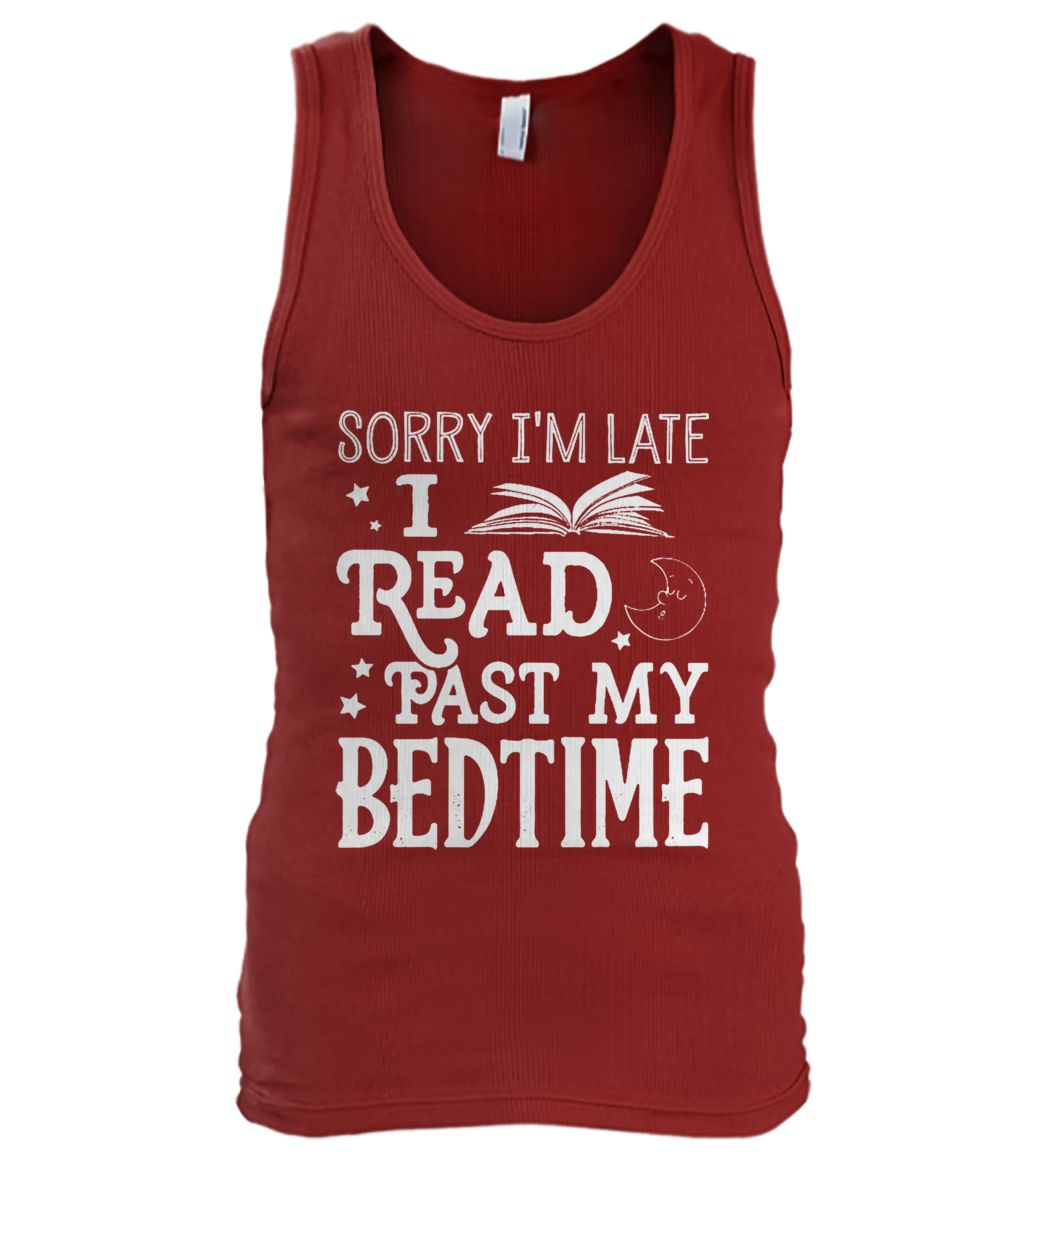 Sorry I'm late I read past my bedtime men's tank top